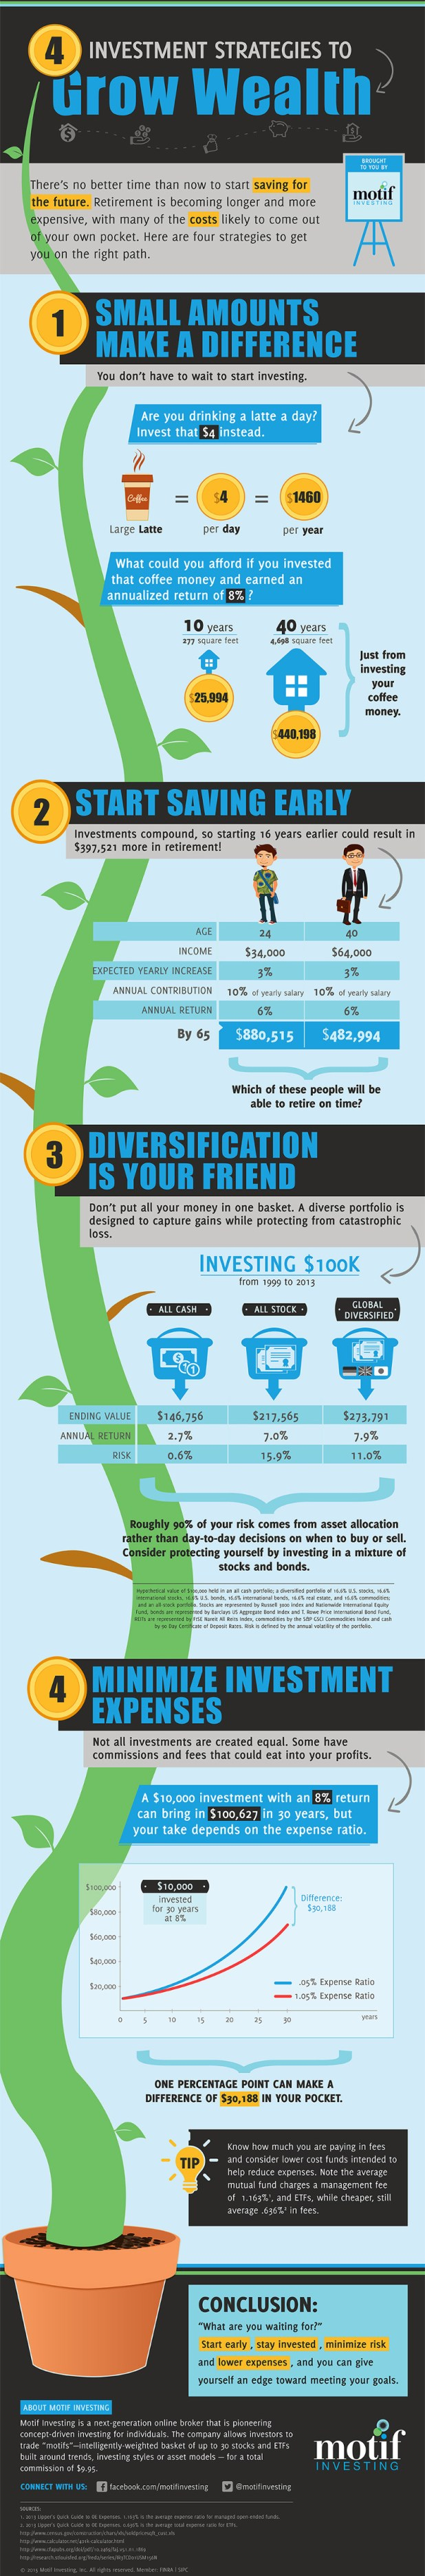 With Investing, Little Things Make a Big Difference